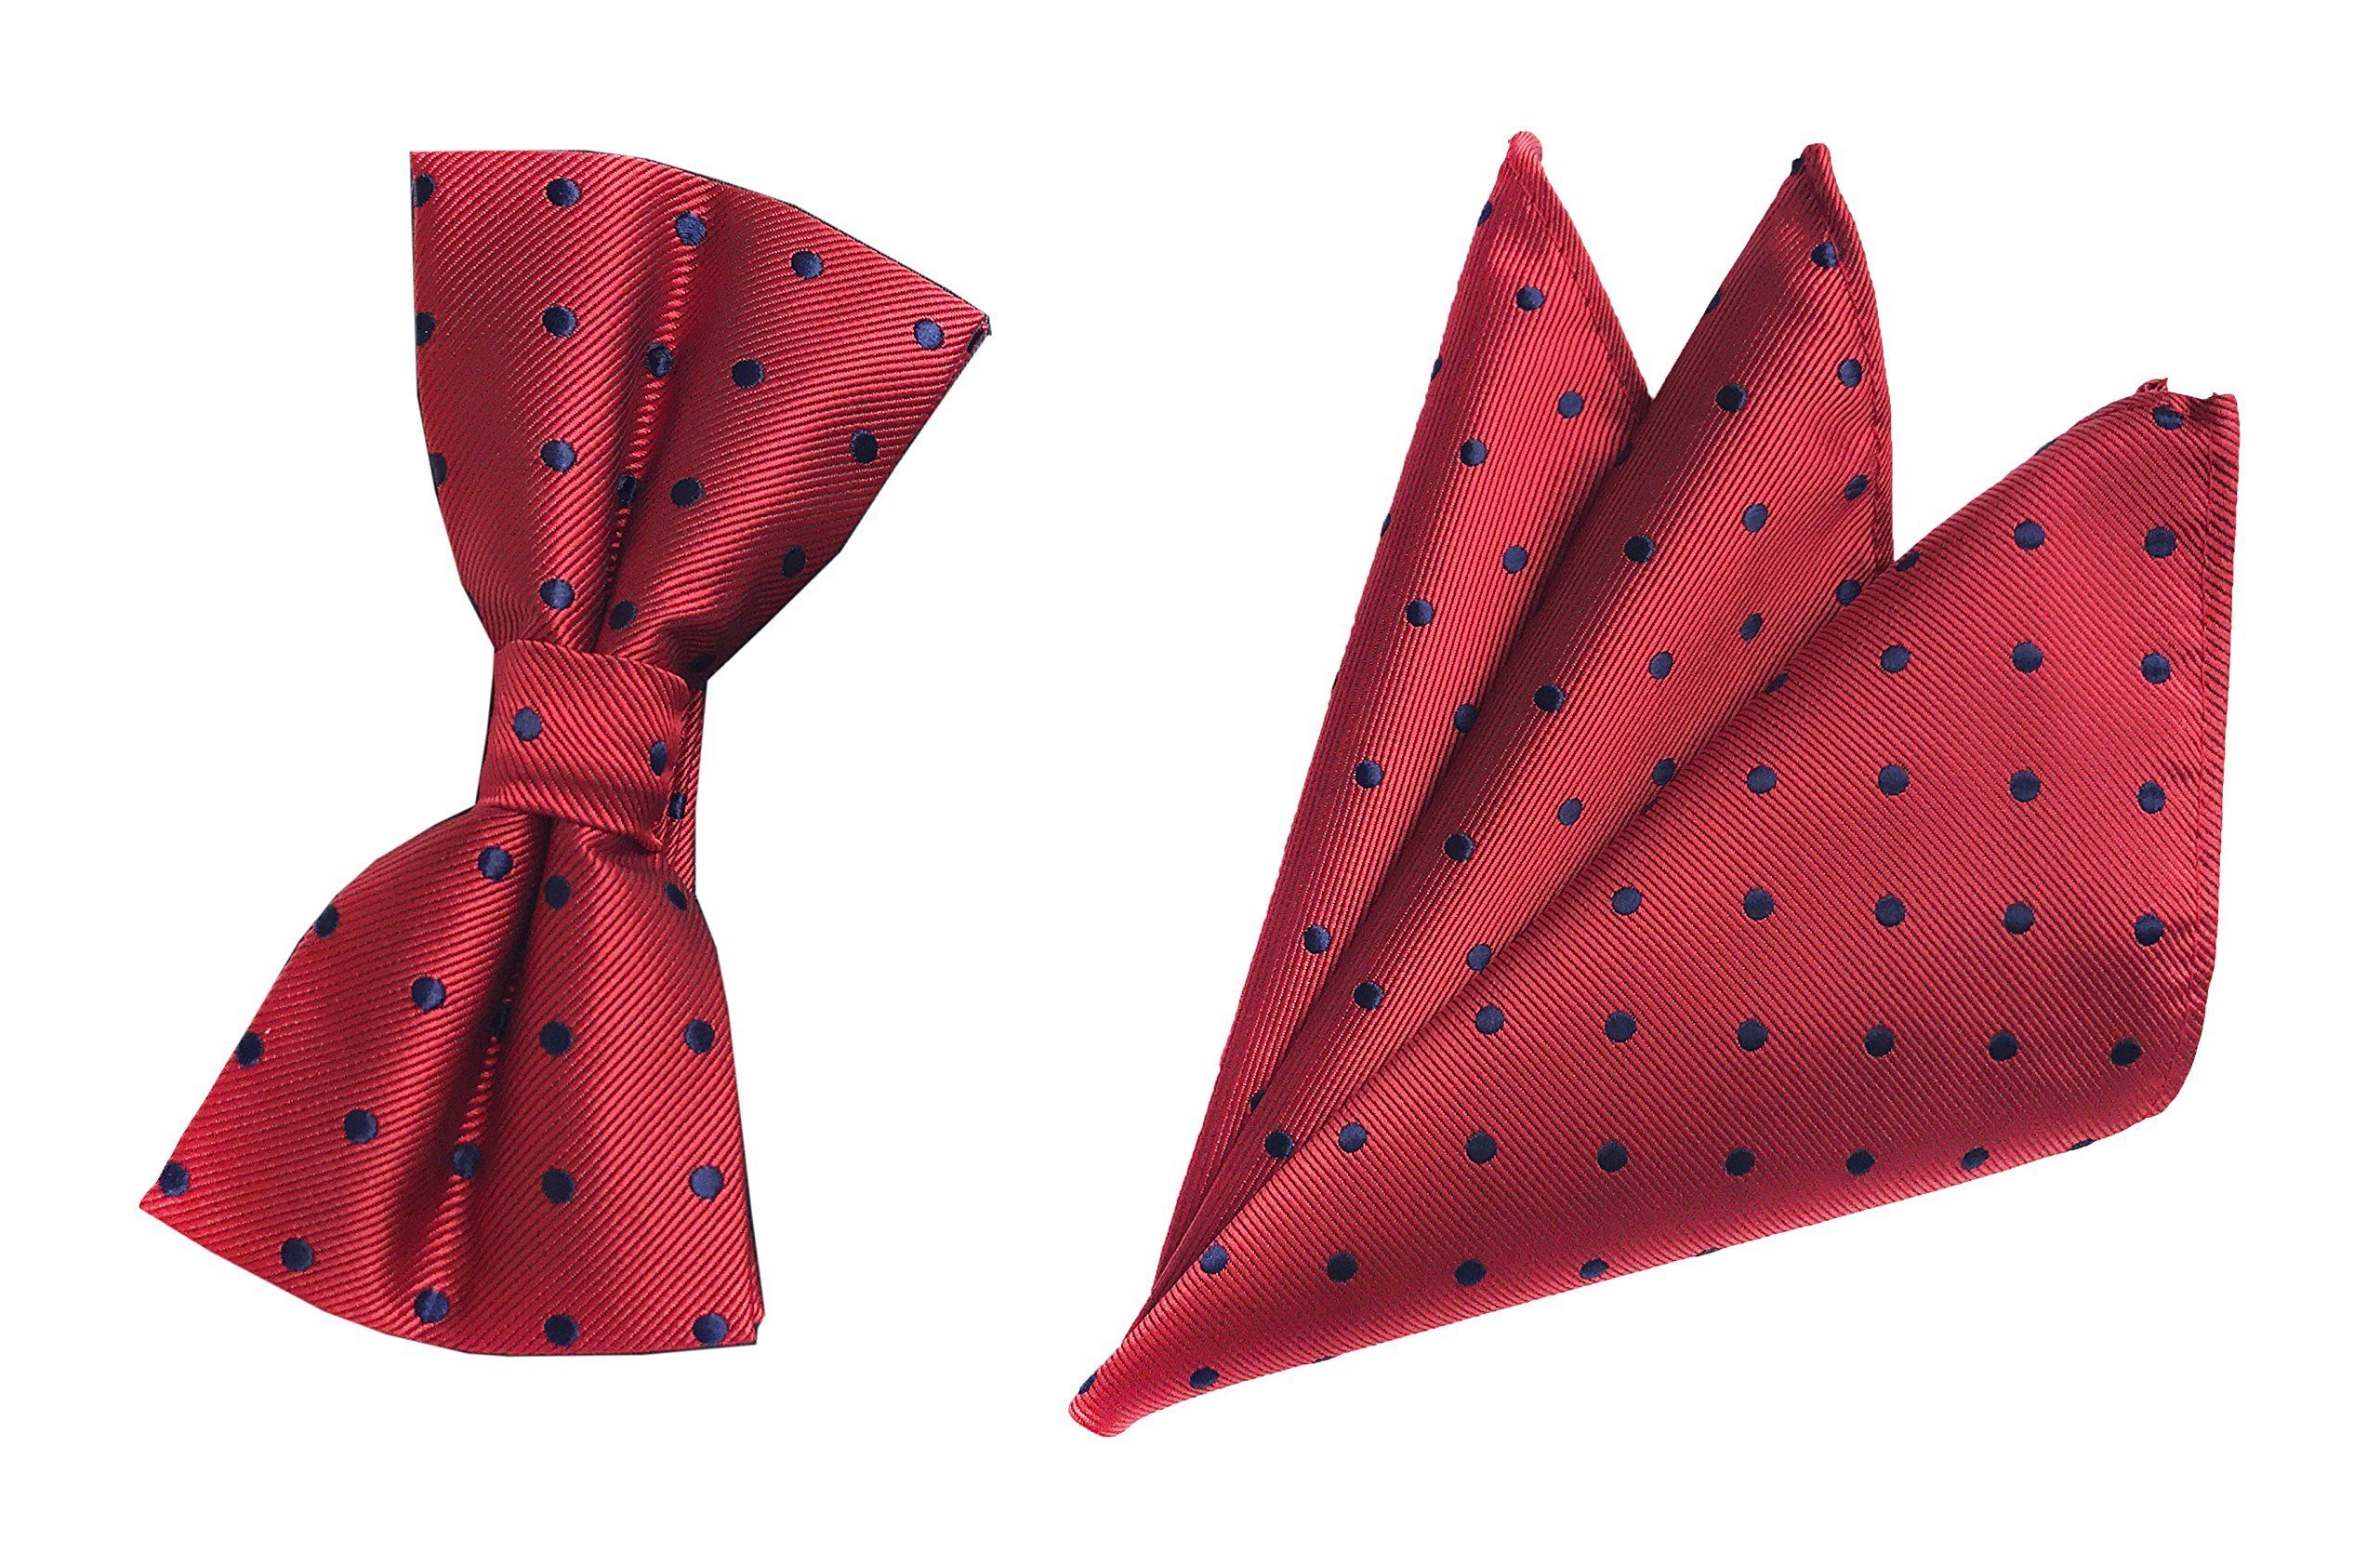 Cherry Red Bow Ties Events Formal Pocket Hankie Handsome Bowties Set Ideal Gifts